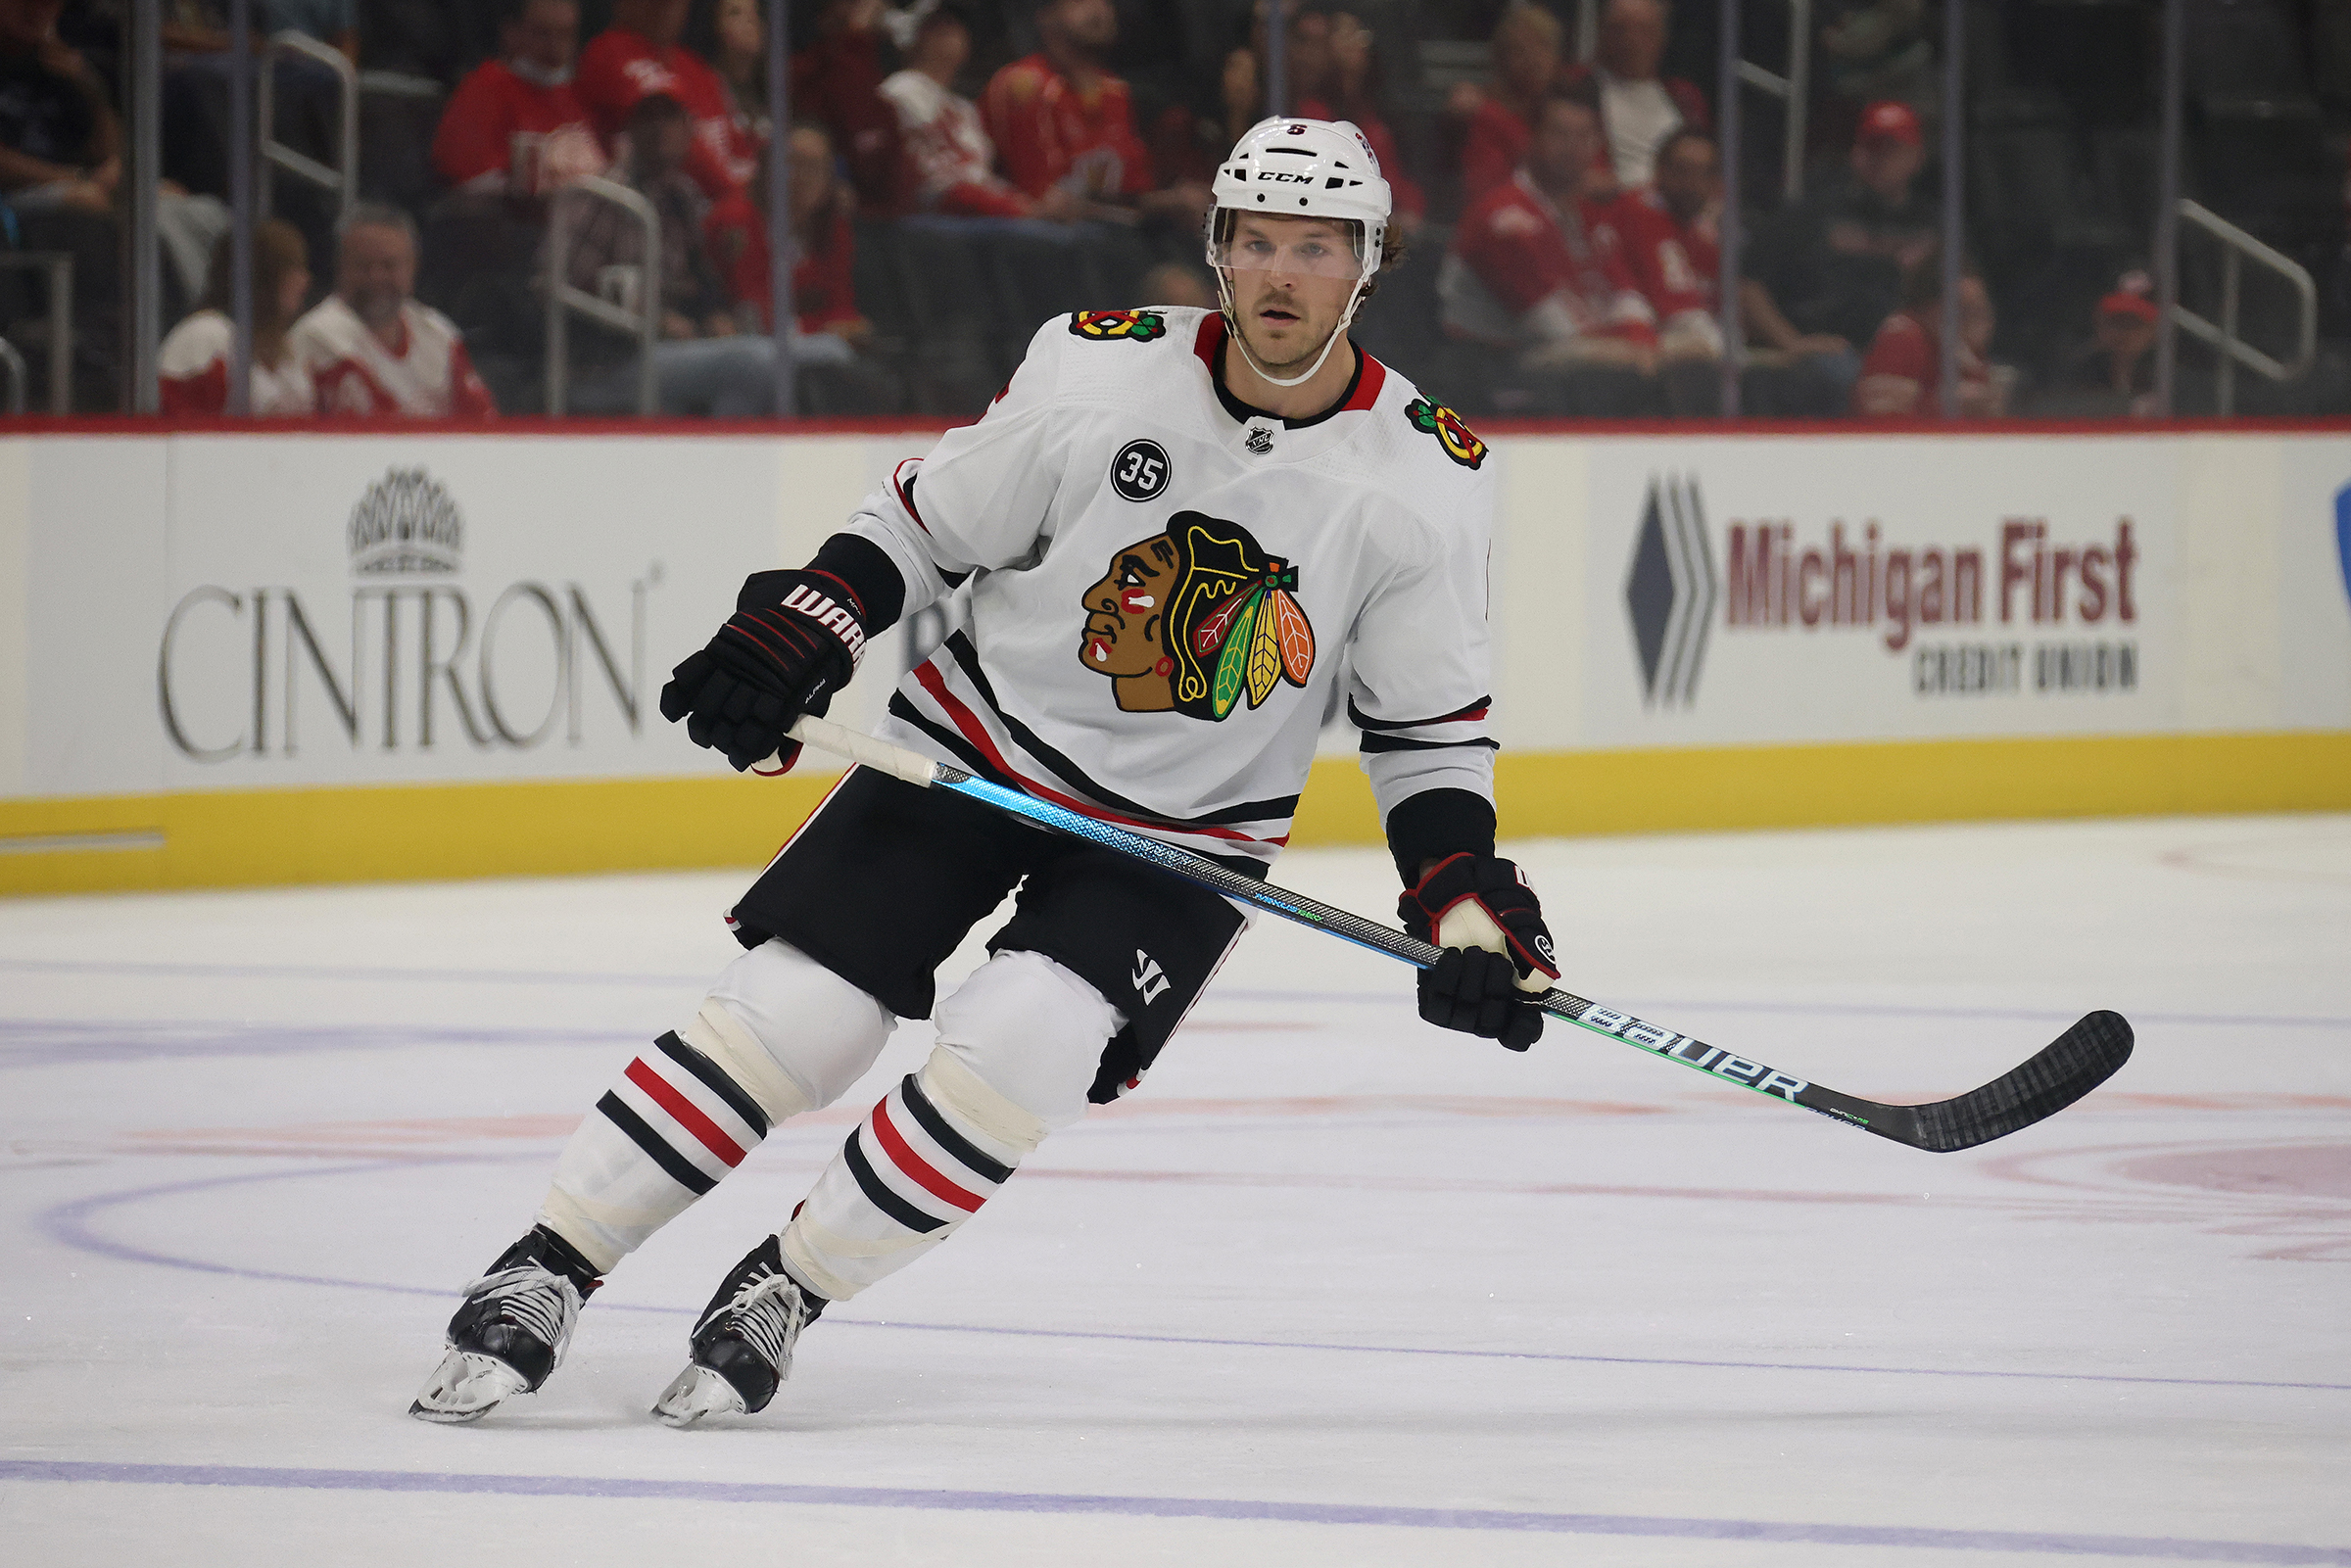 Jake McCabe #6 of the Chicago Blackhawks skates against the Detroit Red Wings during a preseason game at Little Caesars Arena on October 04, 2021 in Detroit, Michigan